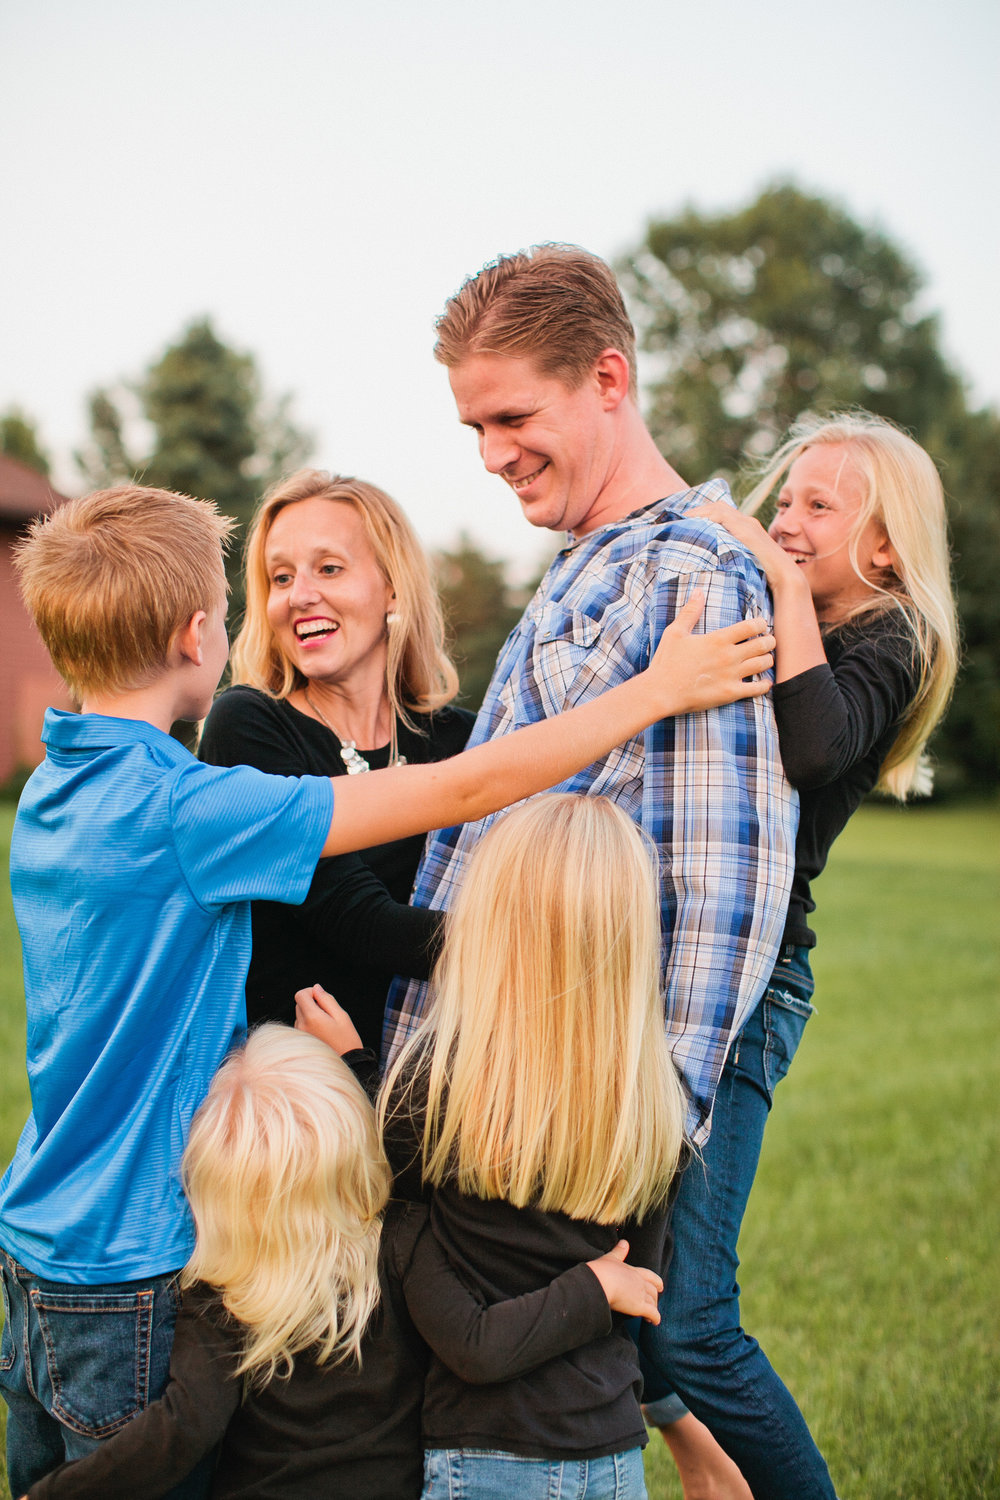 the best Des moines area family photographers